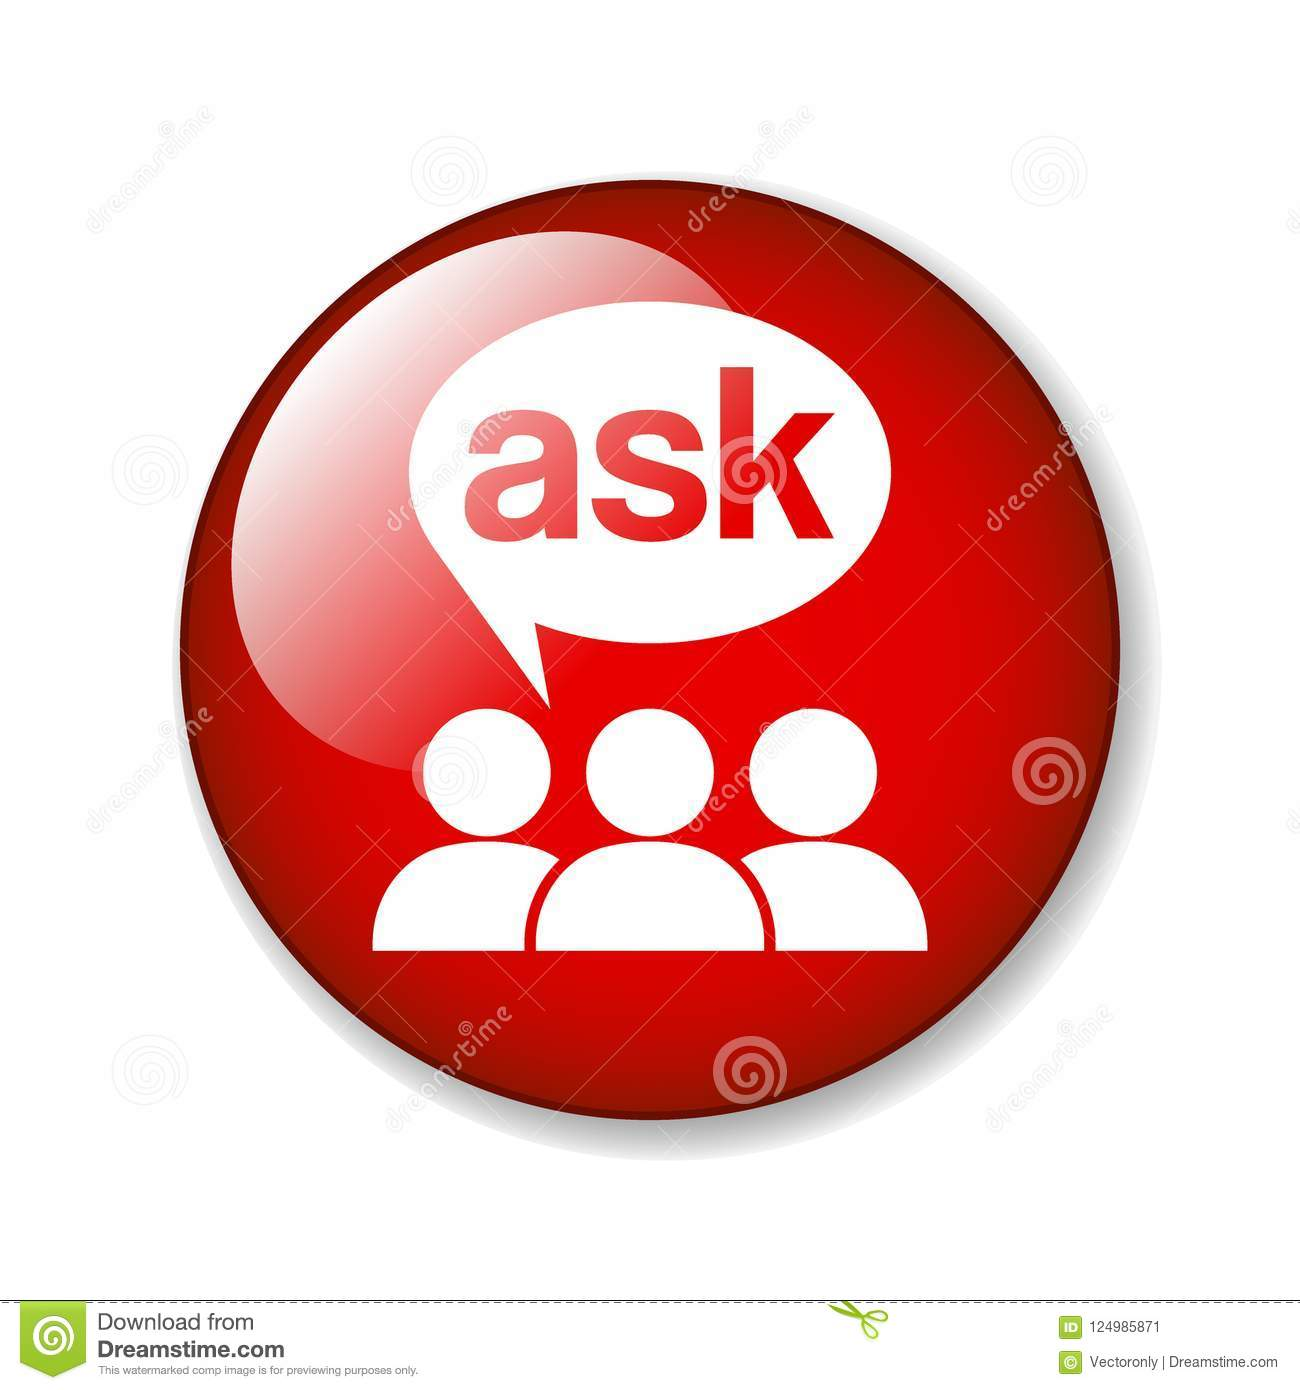 Ask support icon